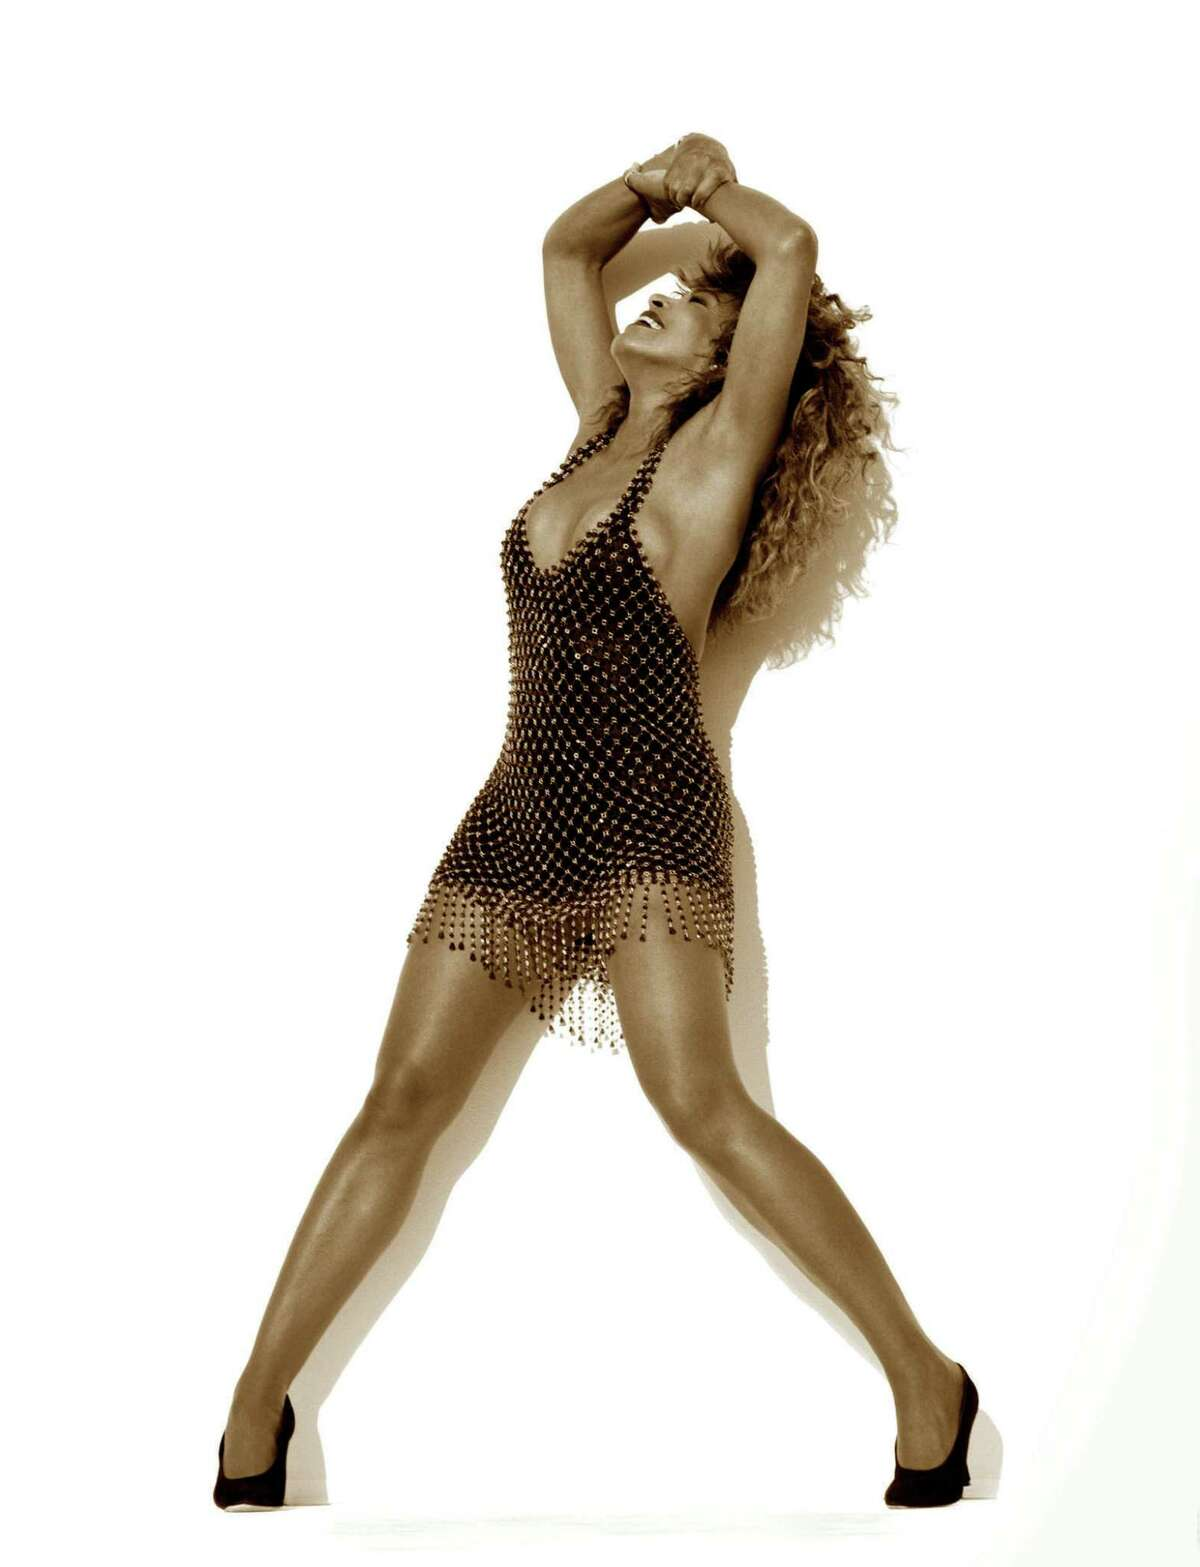 Herb Ritts Tina Turner Los Angeles 1993. Herb Ritts Foundation